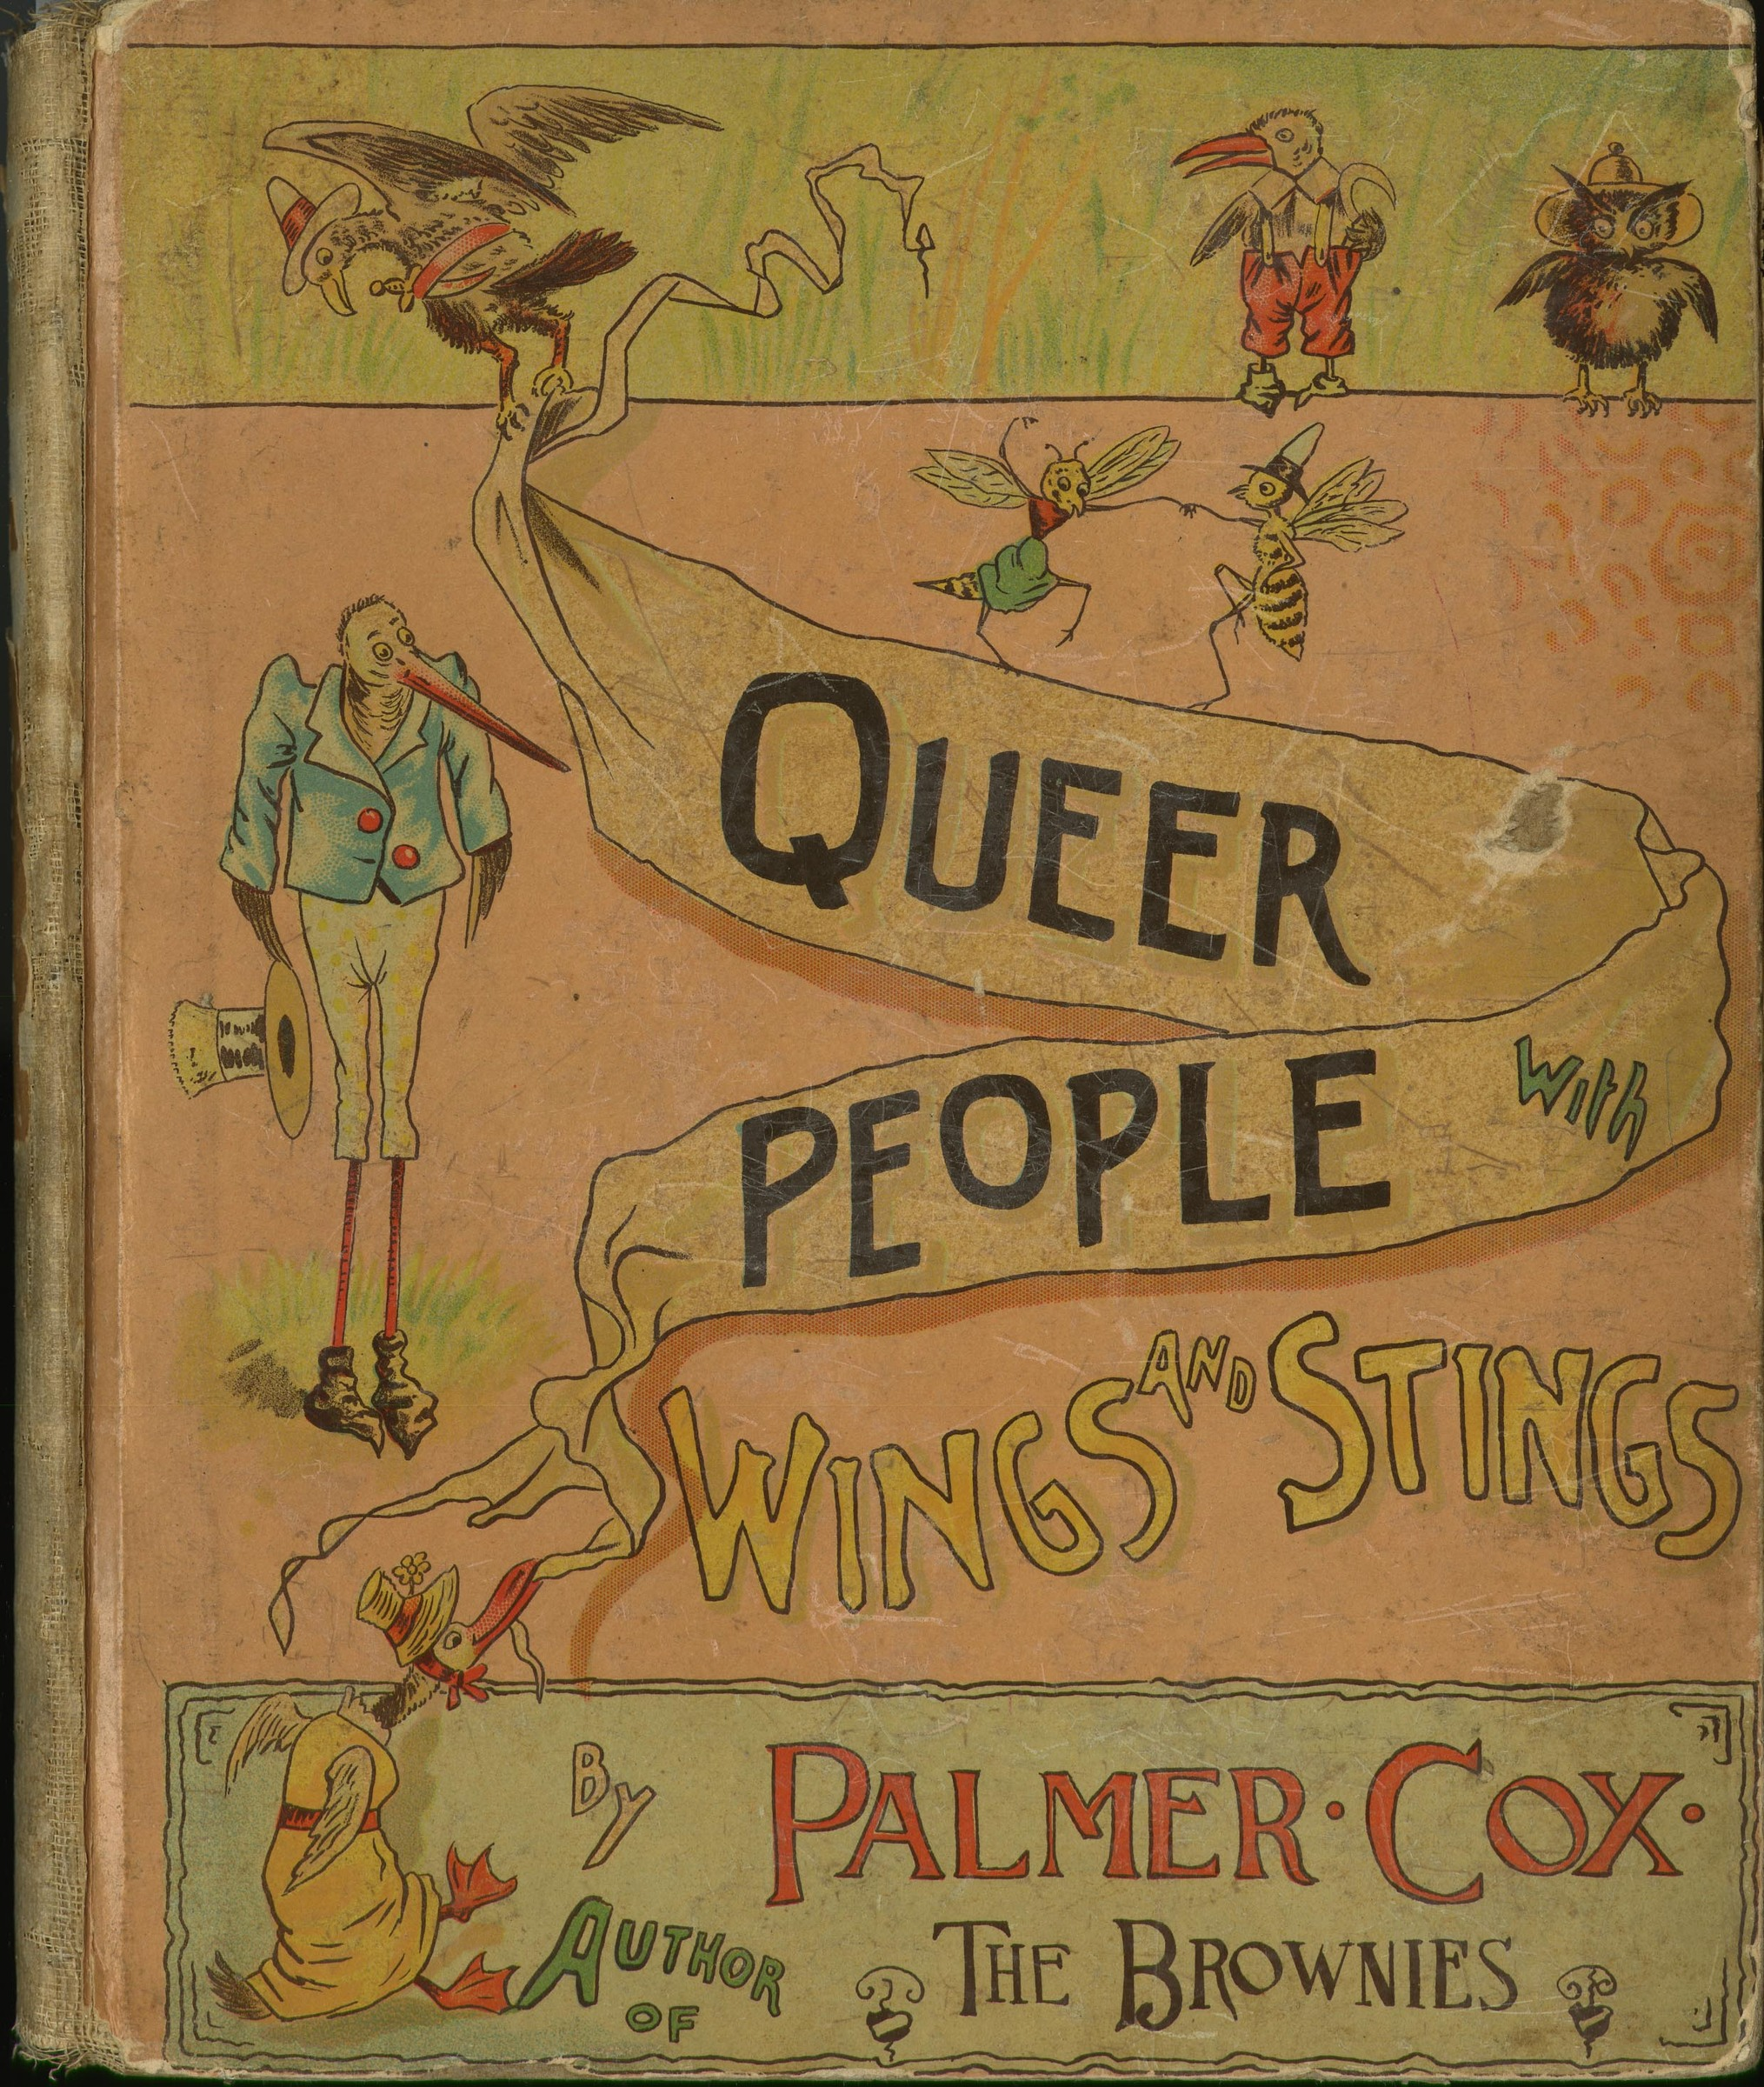 Queer People with Wings and Stings